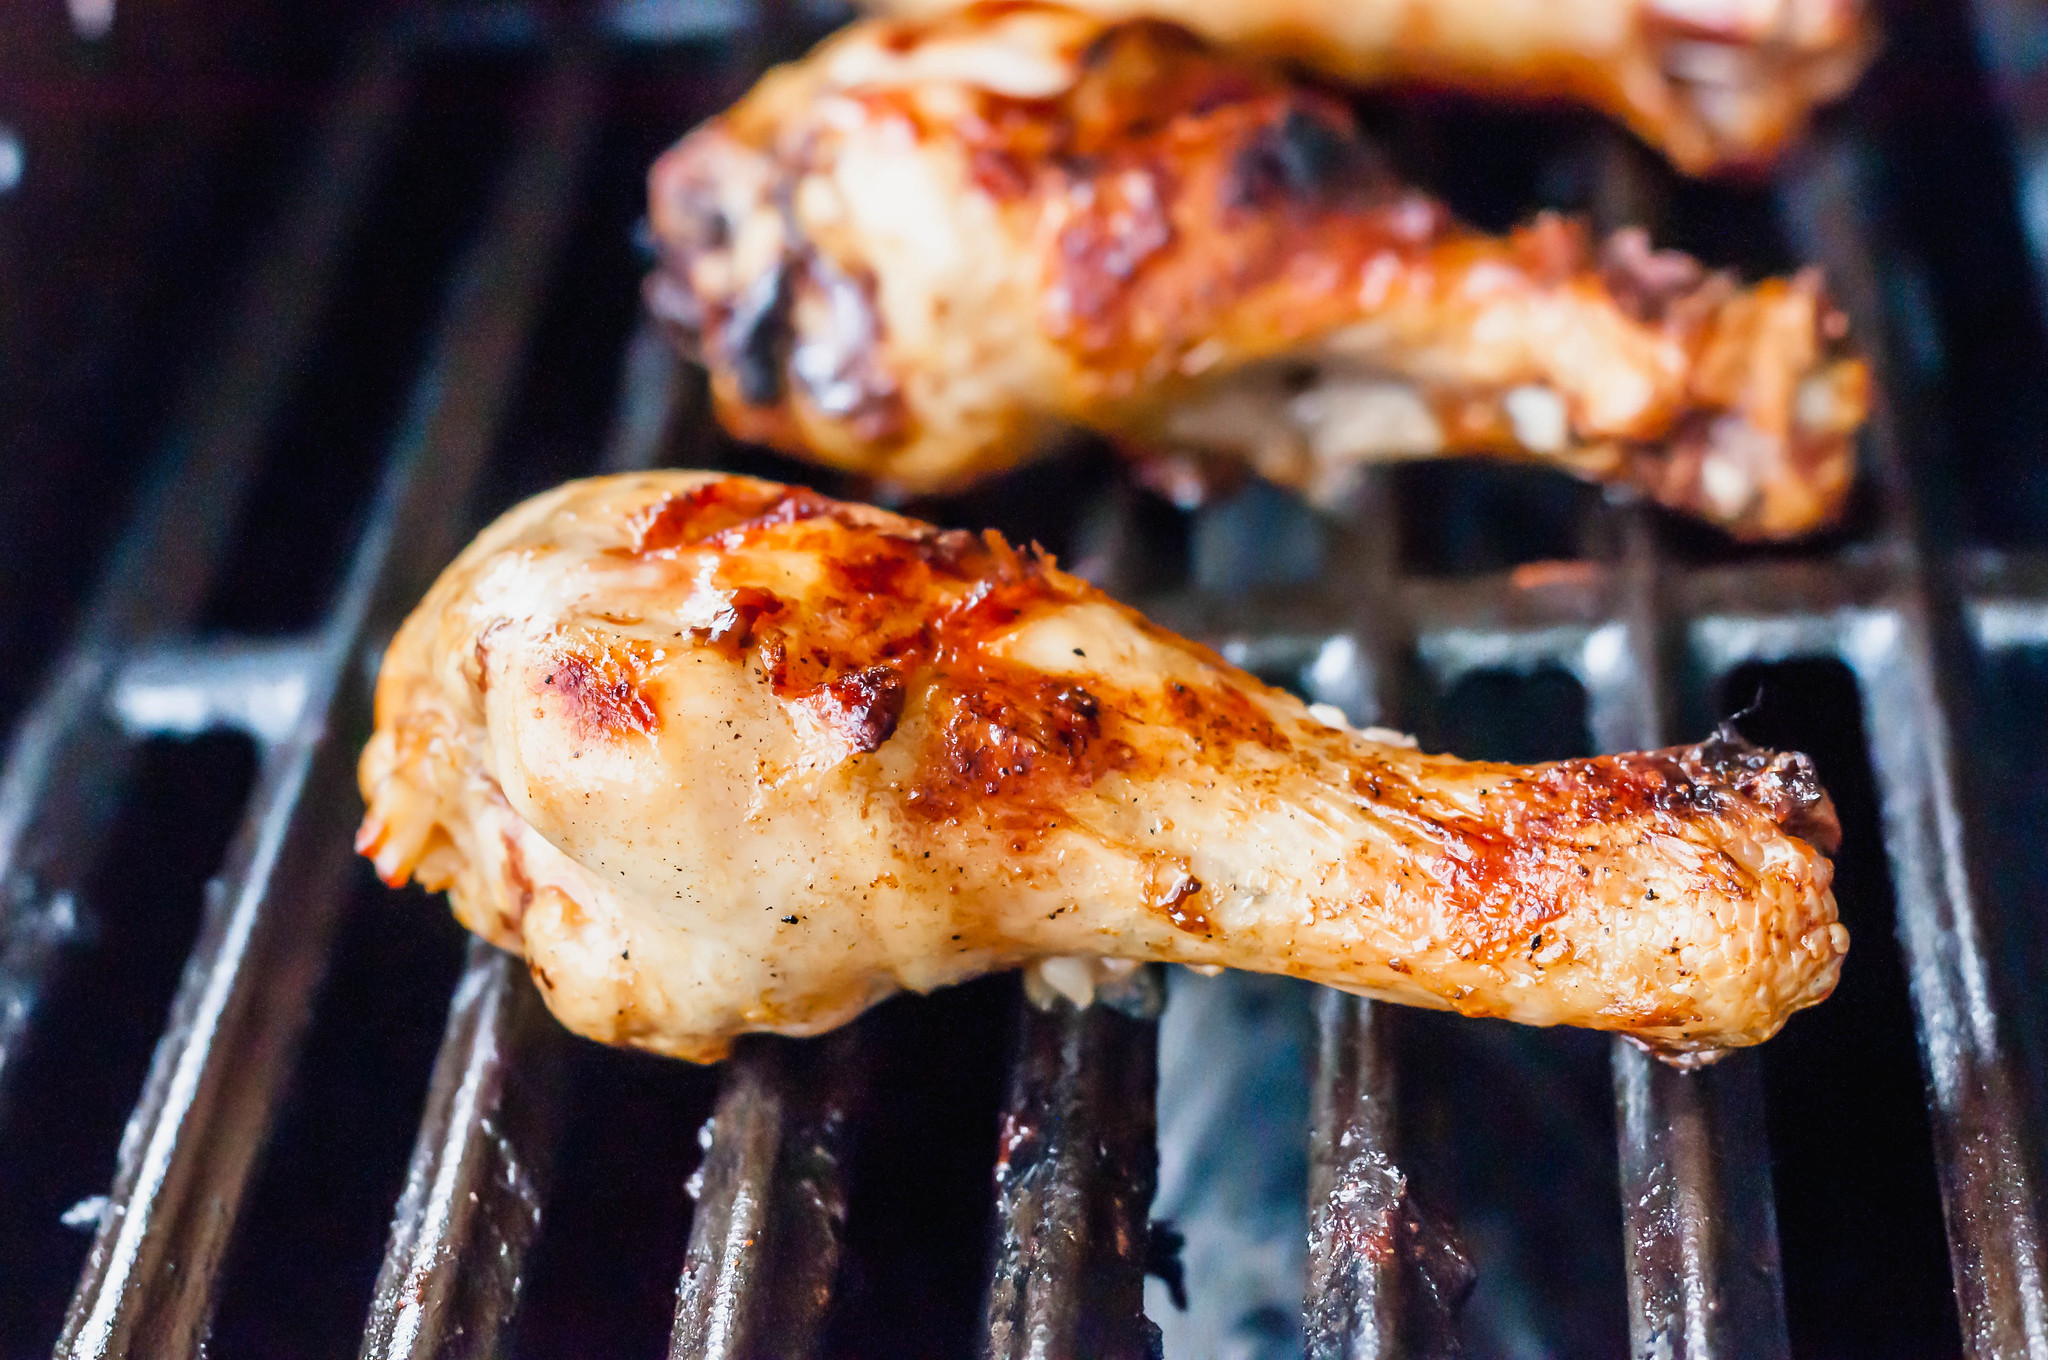 Let's hold on to summer just a bit longer with these Grilled Chicken Drumsticks. Marinated for tenderness and perfectly charred on the grill.